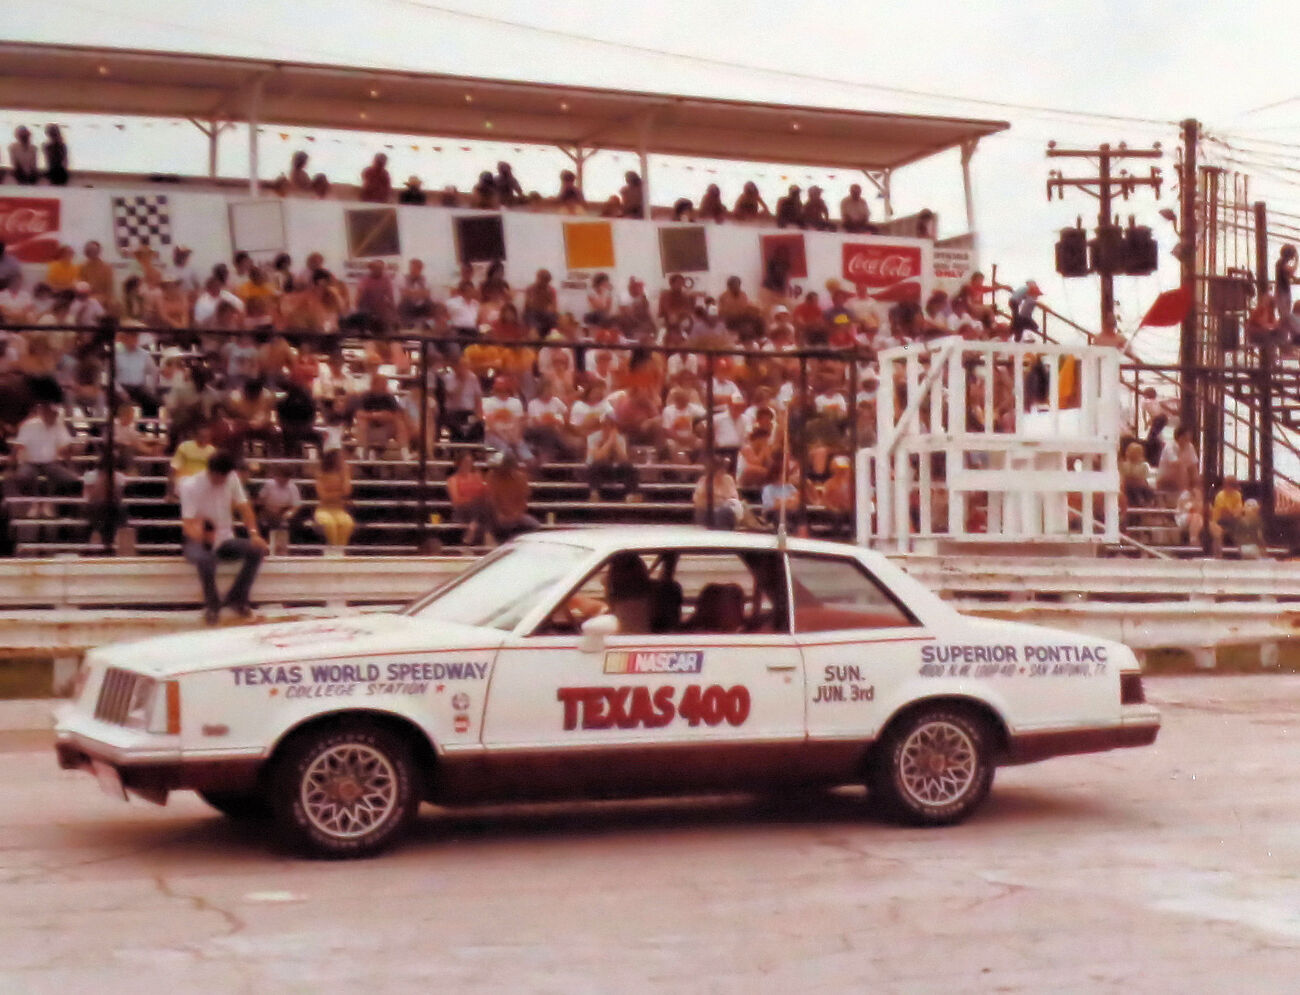 the pace car for the 400 mile race that day